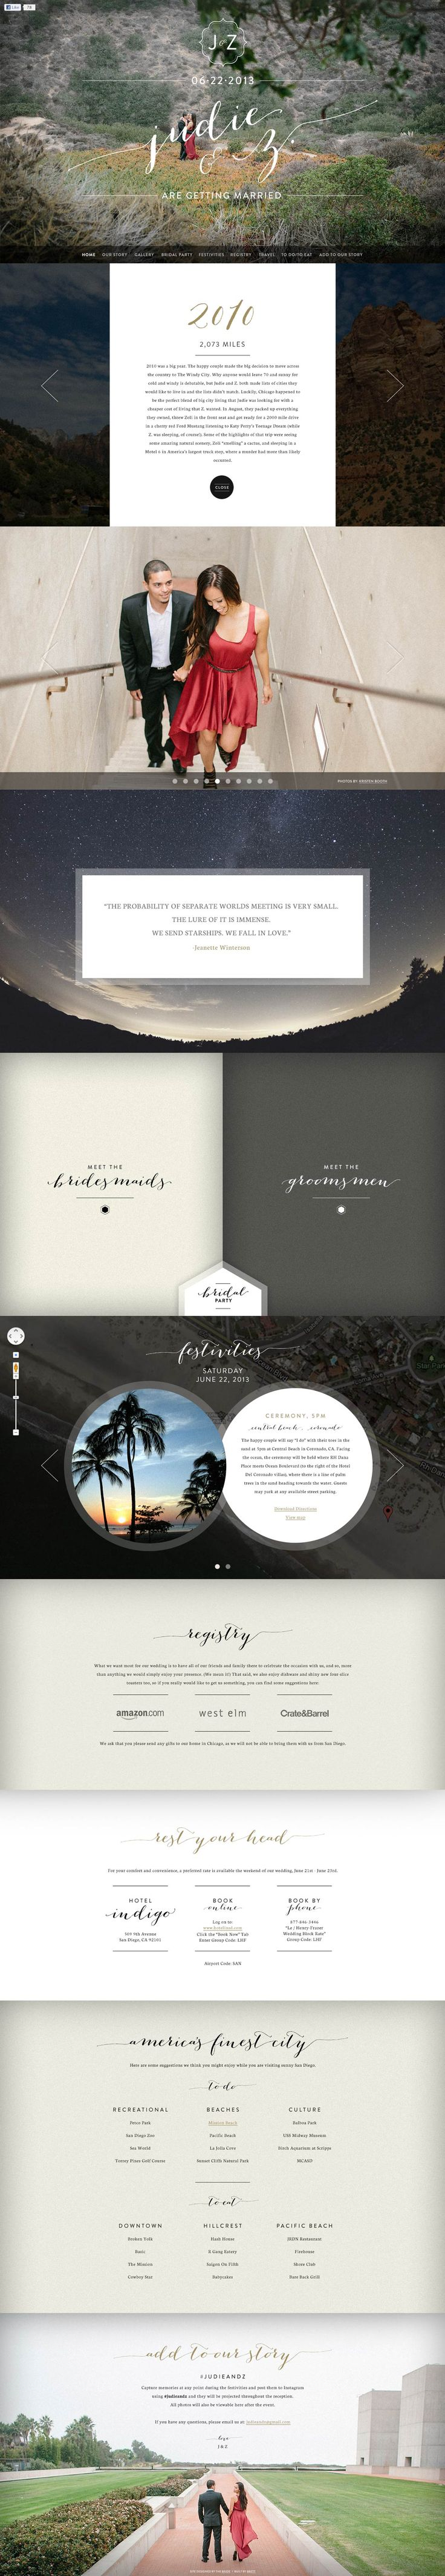 "Some great elements in this wedding one pager for ""Judie & Z"". Quite like this mix of font overlayed on the quality images - especially like that choice of the last image. Only crit is the cut off site on bigger monitors, so best viewed on your 1280px screens."